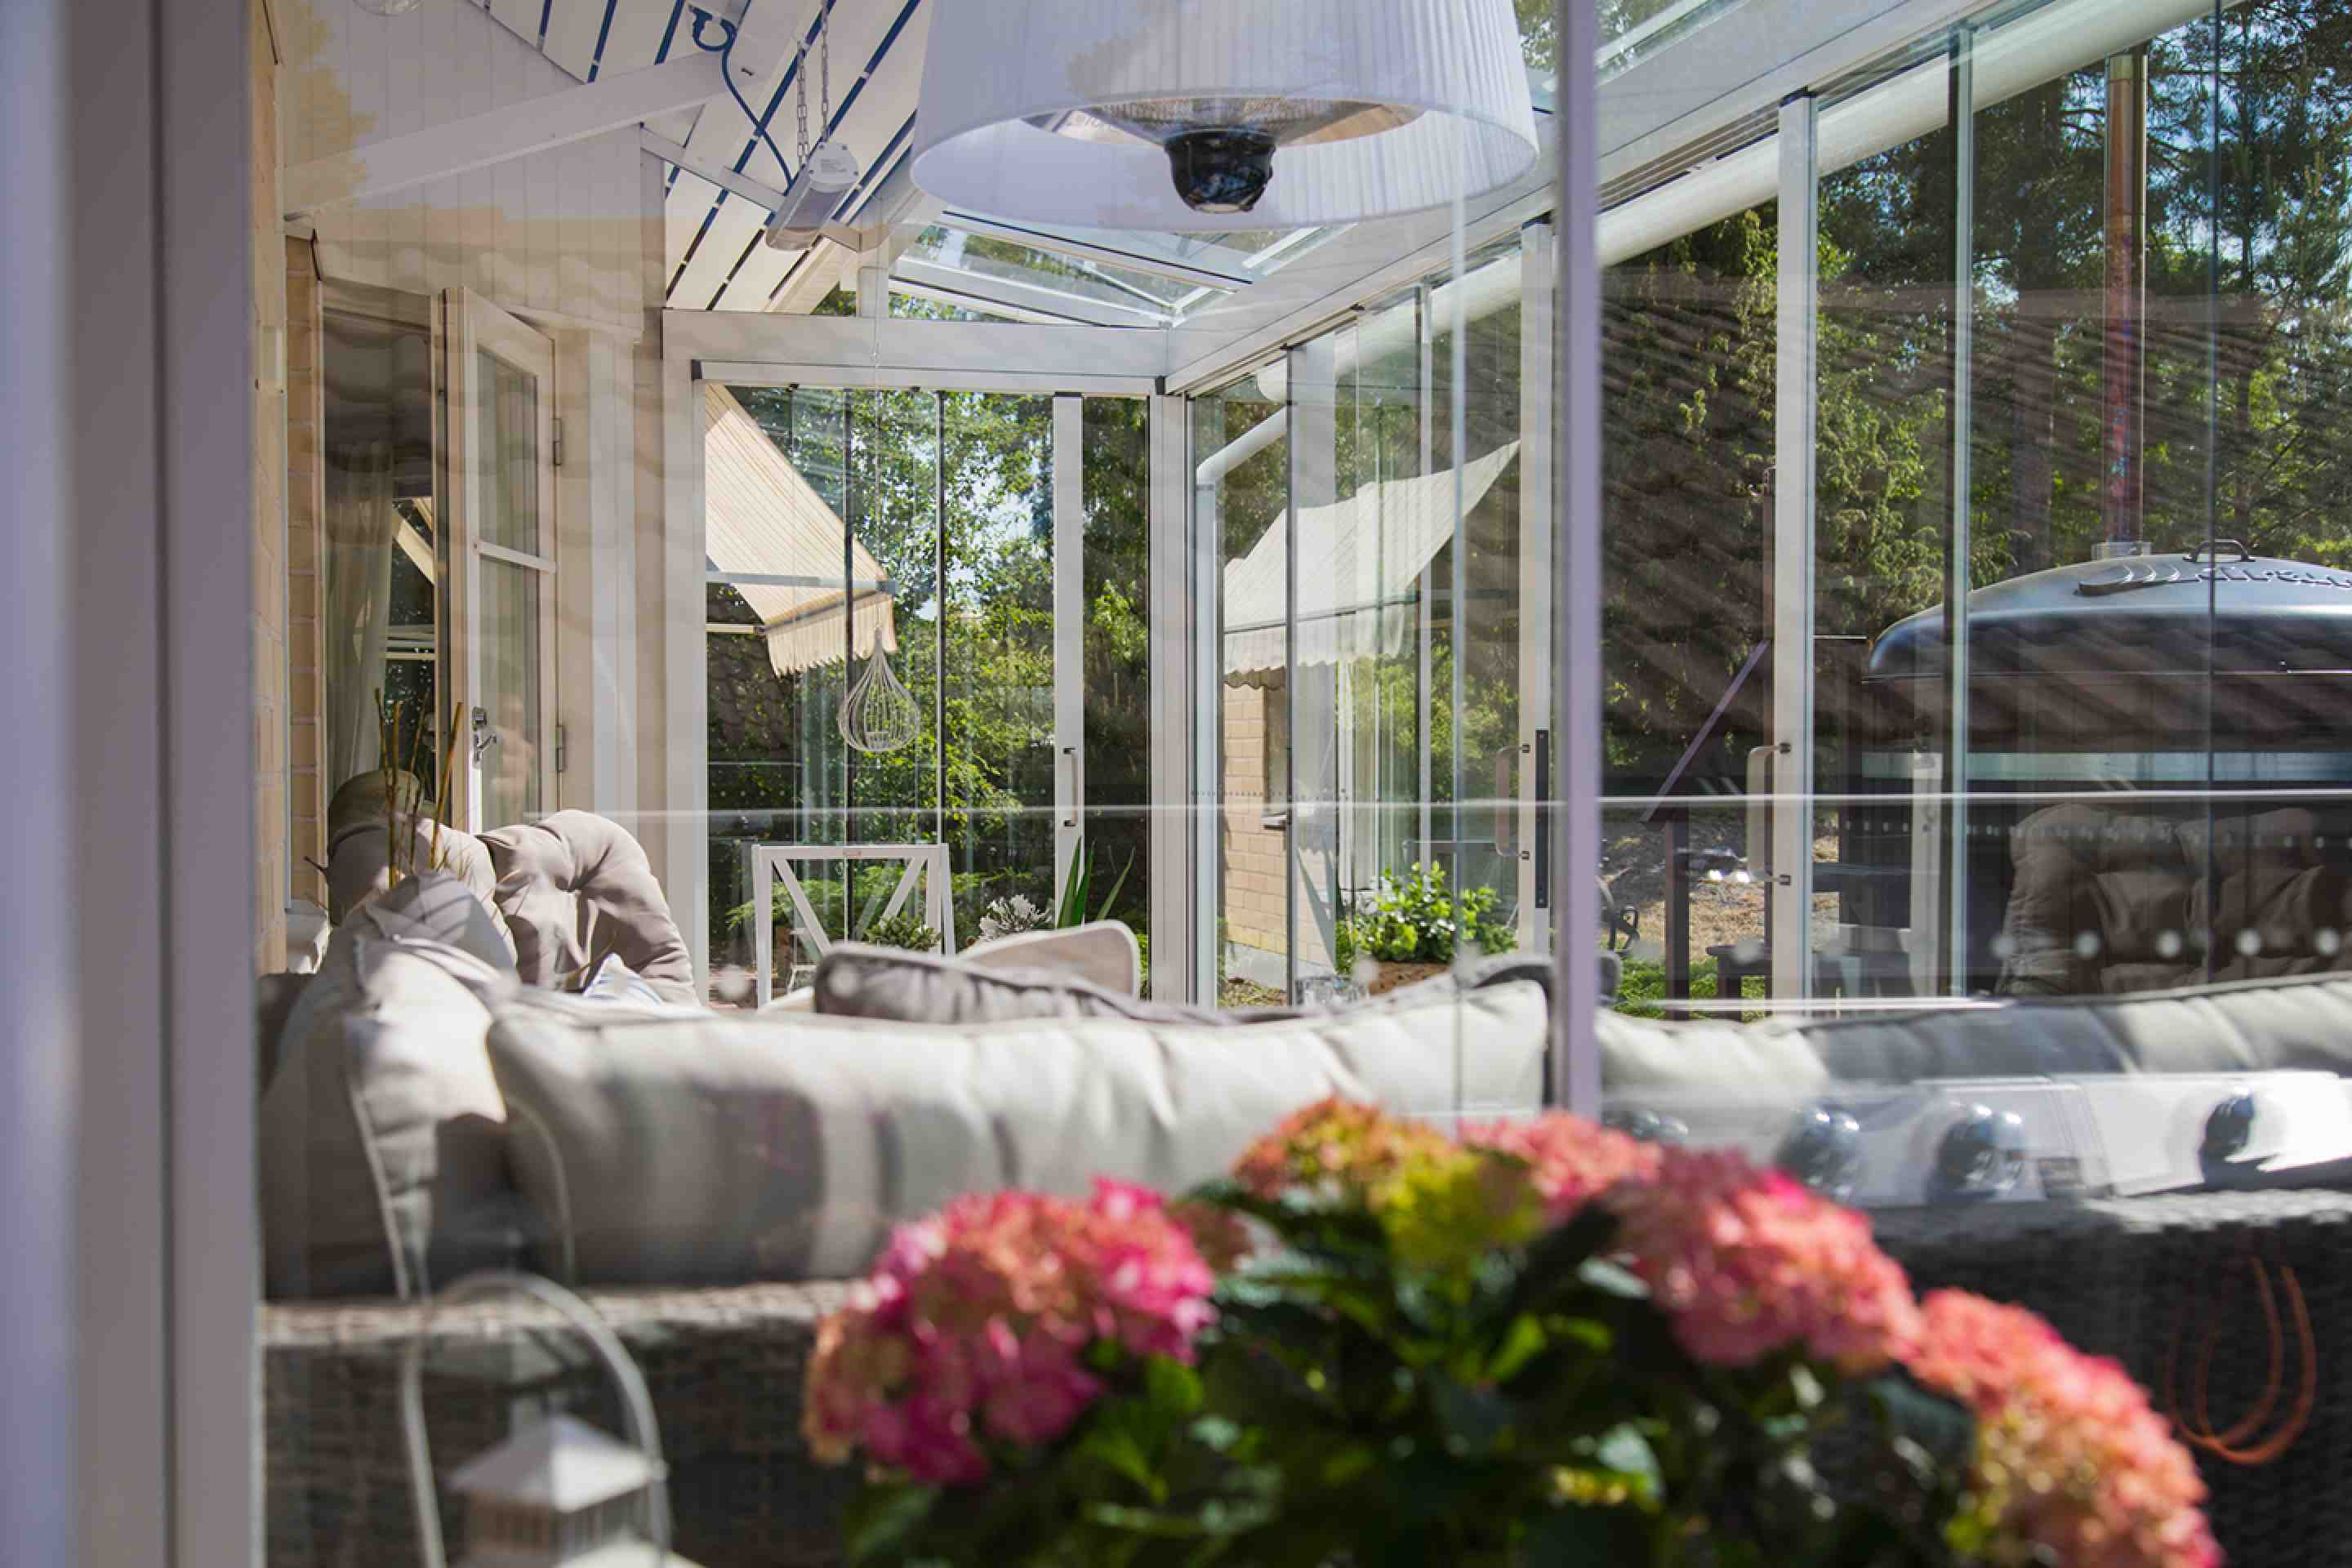 lumon canada, patio cover, sunroom, retractable glass walls, glass, glass walls, made in finland, sunrooms toronto, sunrooms vancouver, sunrooms hamilton, sunrooms vaughan, sunrooms stoney creek, backyard, home improvement, glass sunroom, glass sunroom richmond hill, glass sunroom gta, glass sunroom